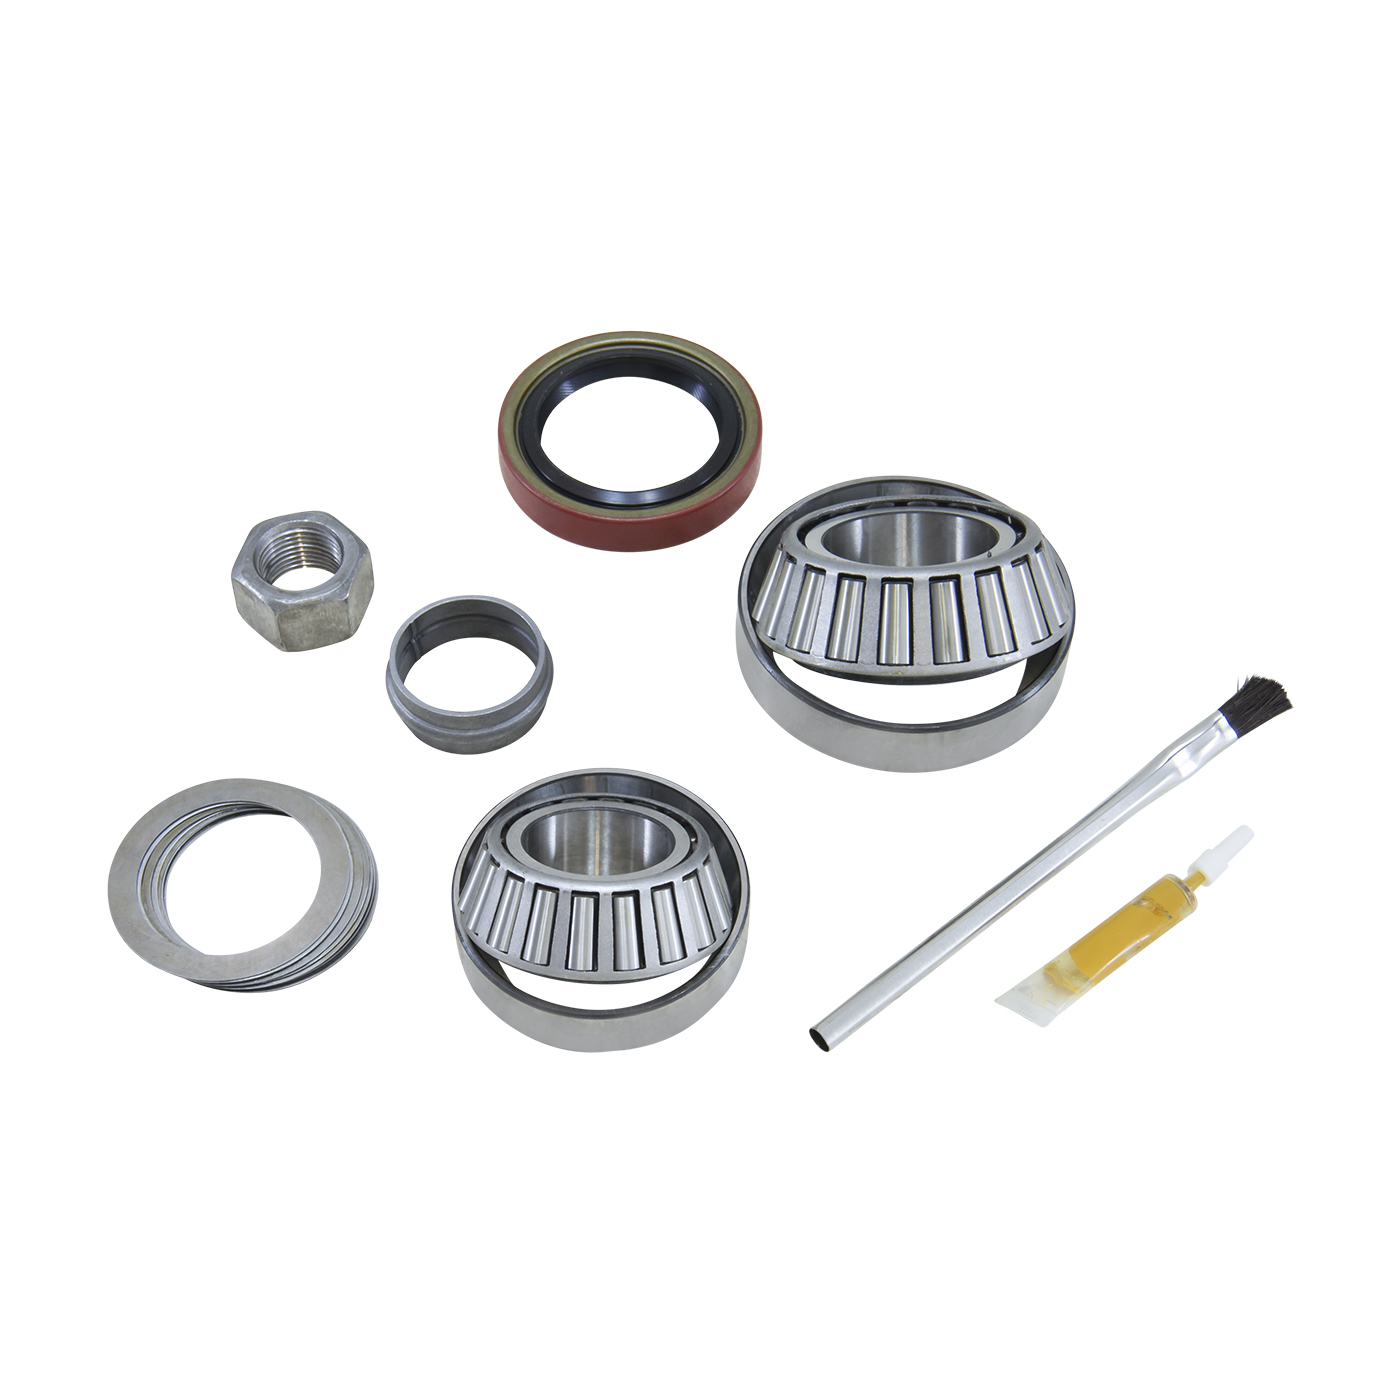 PK GM14T-C - Yukon Pinion install kit for '99 & newer 10.5